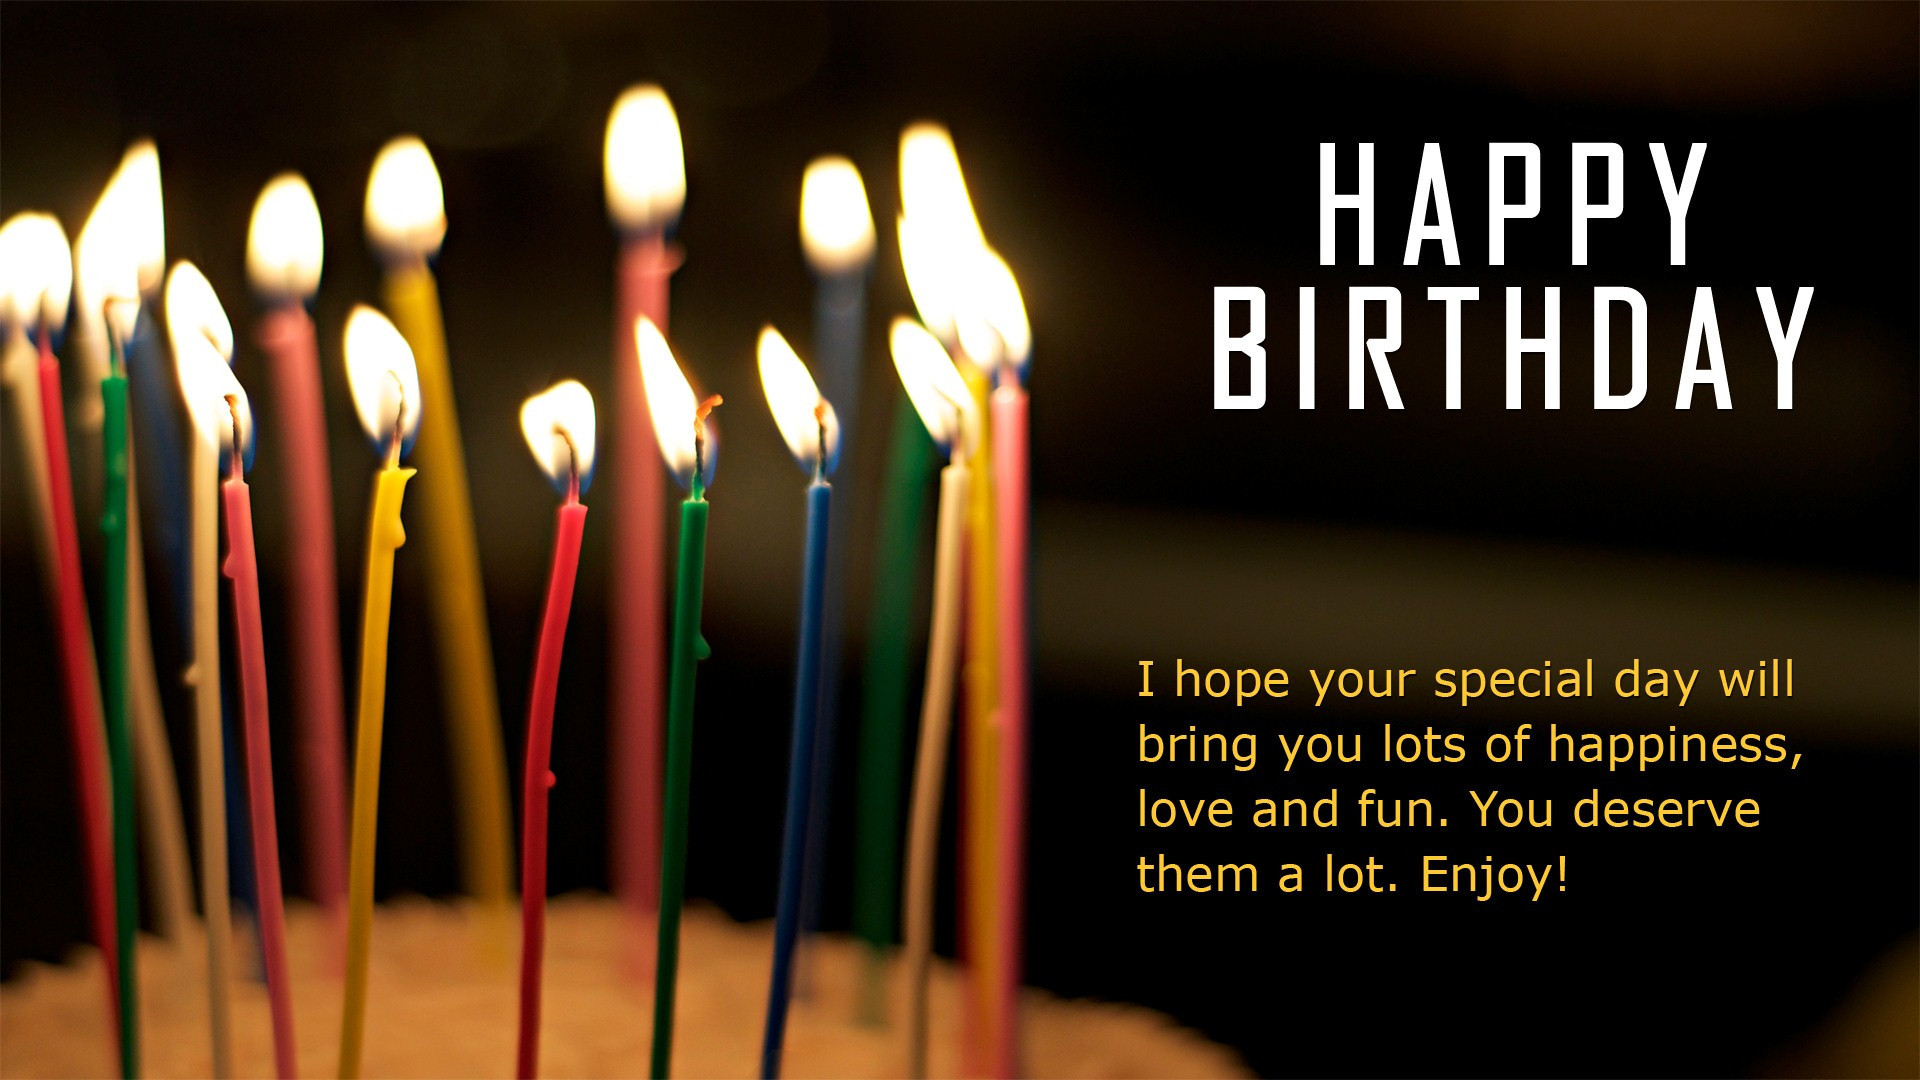 hd happy birthday wishes wallpapers ; awesome-happy-birthday-greeting-wishes-hd-wallpapers-of-happy-birthday-wishes-hd-images